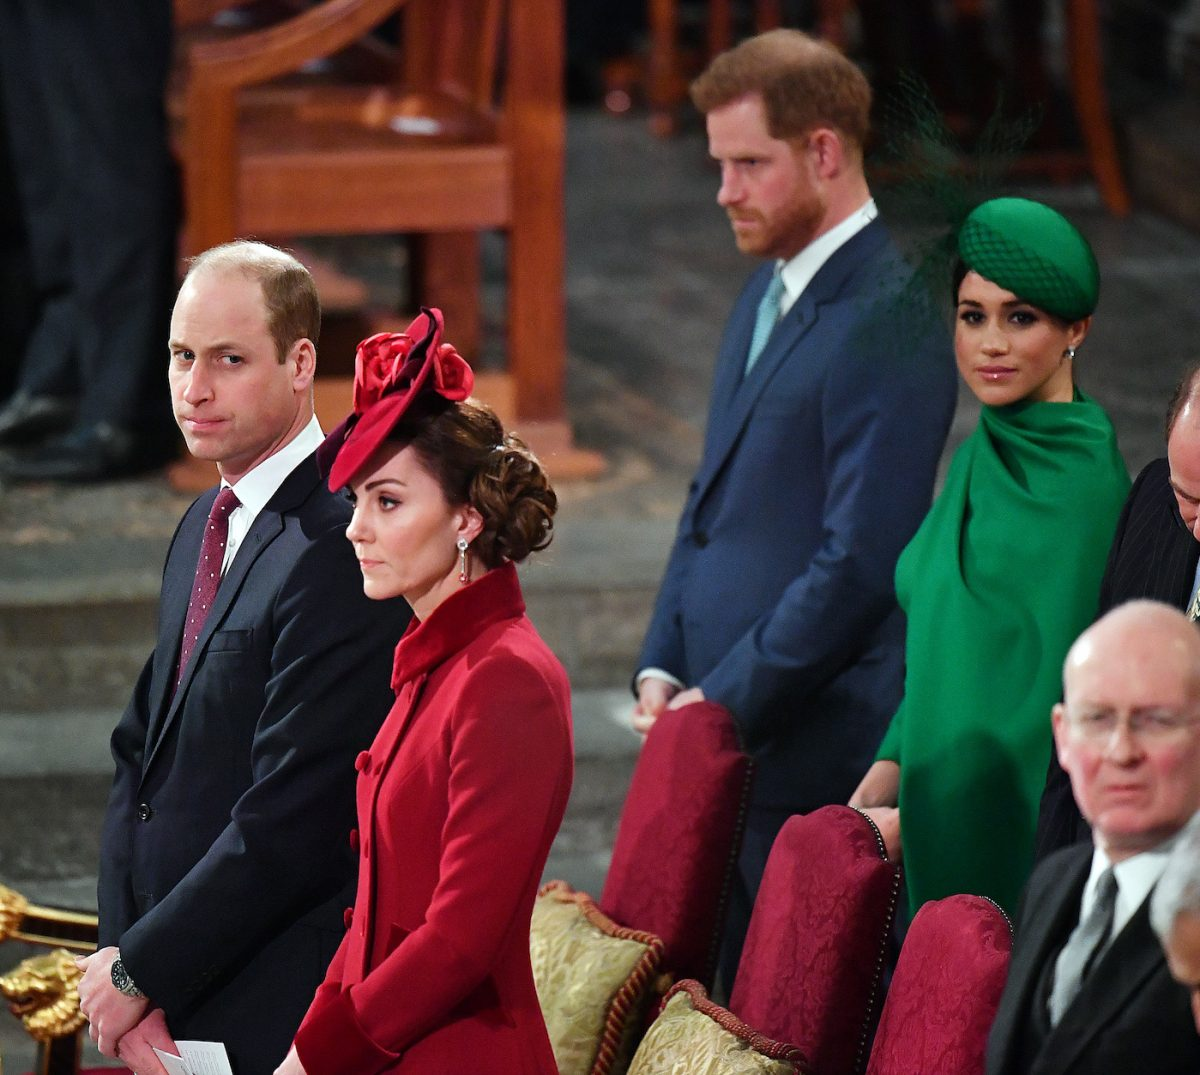 Prince William, Kate Middleton, Prince Harry, and Meghan Markle at 2020 Commonwealth Day Service